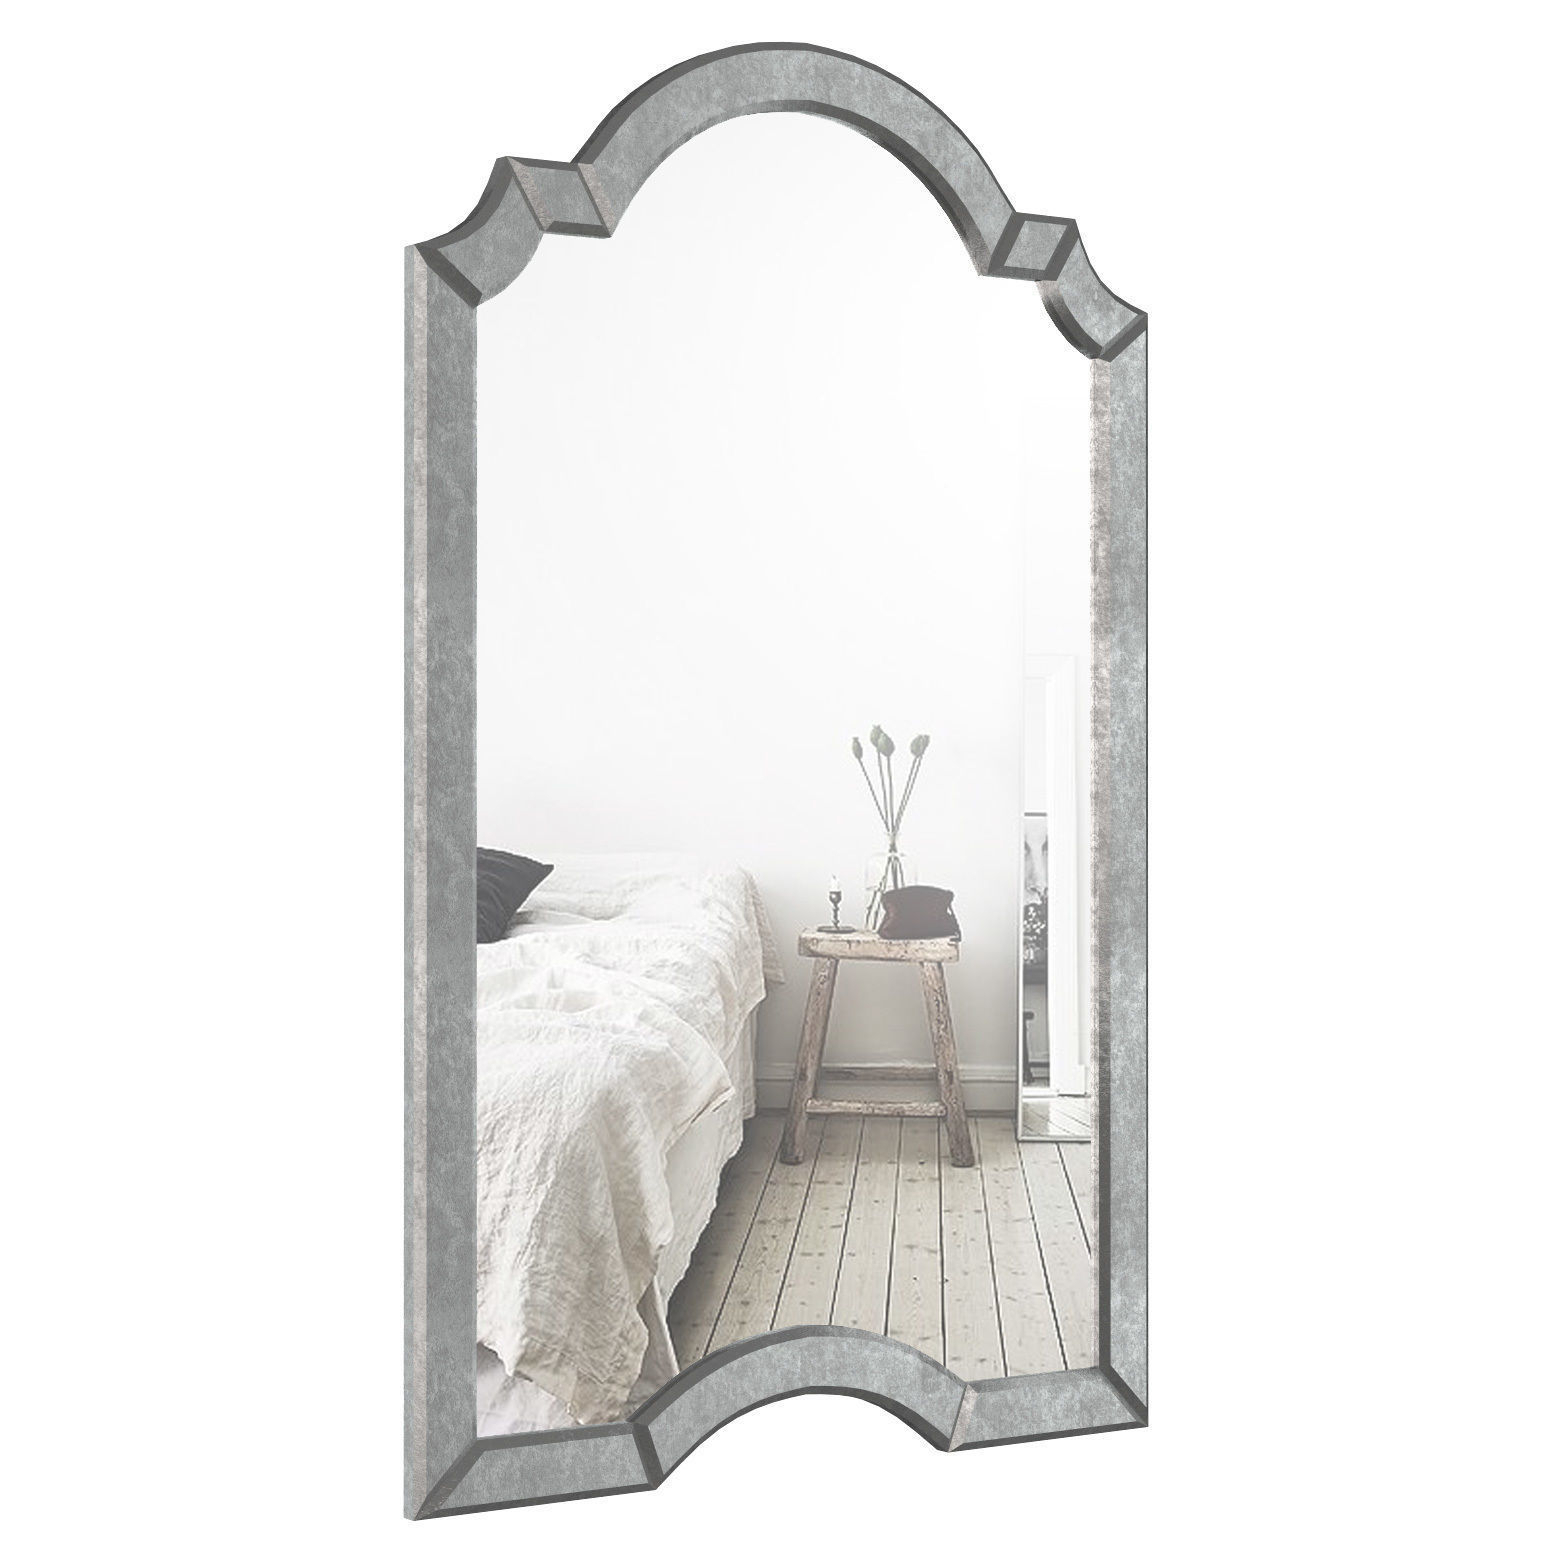 Ekaterina Arch – Crowned Top Wall Mirror Wlao1197 | 3D Model With Regard To Ekaterina Arch/crowned Top Wall Mirrors (Image 13 of 20)